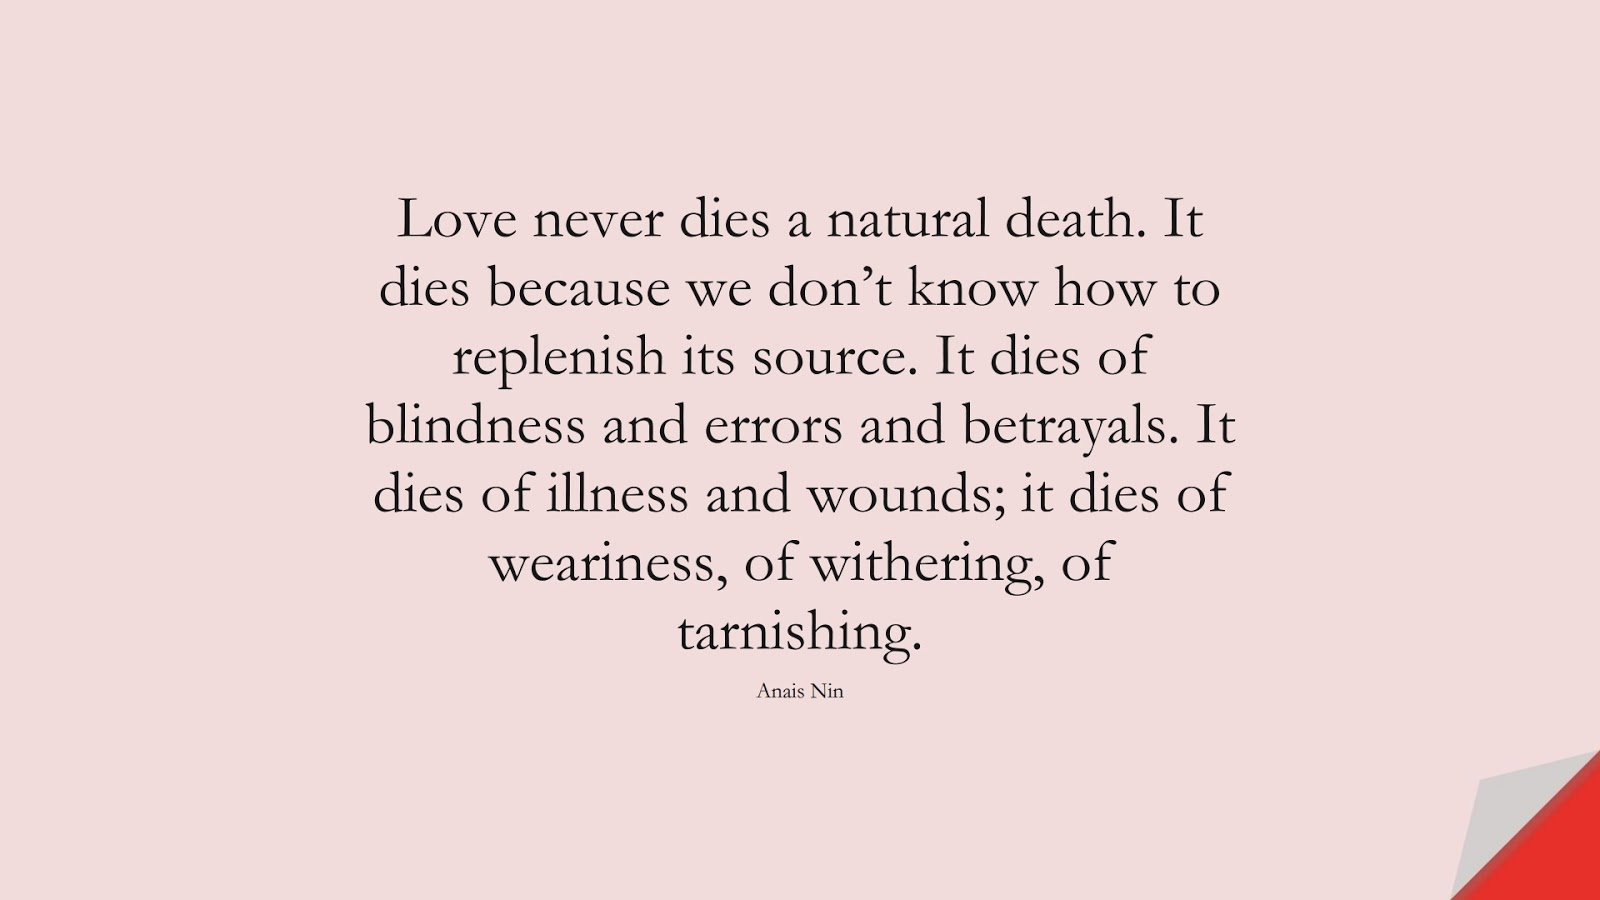 Love never dies a natural death. It dies because we don't know how to replenish its source. It dies of blindness and errors and betrayals. It dies of illness and wounds; it dies of weariness, of withering, of tarnishing. (Anais Nin);  #SadLoveQuotes